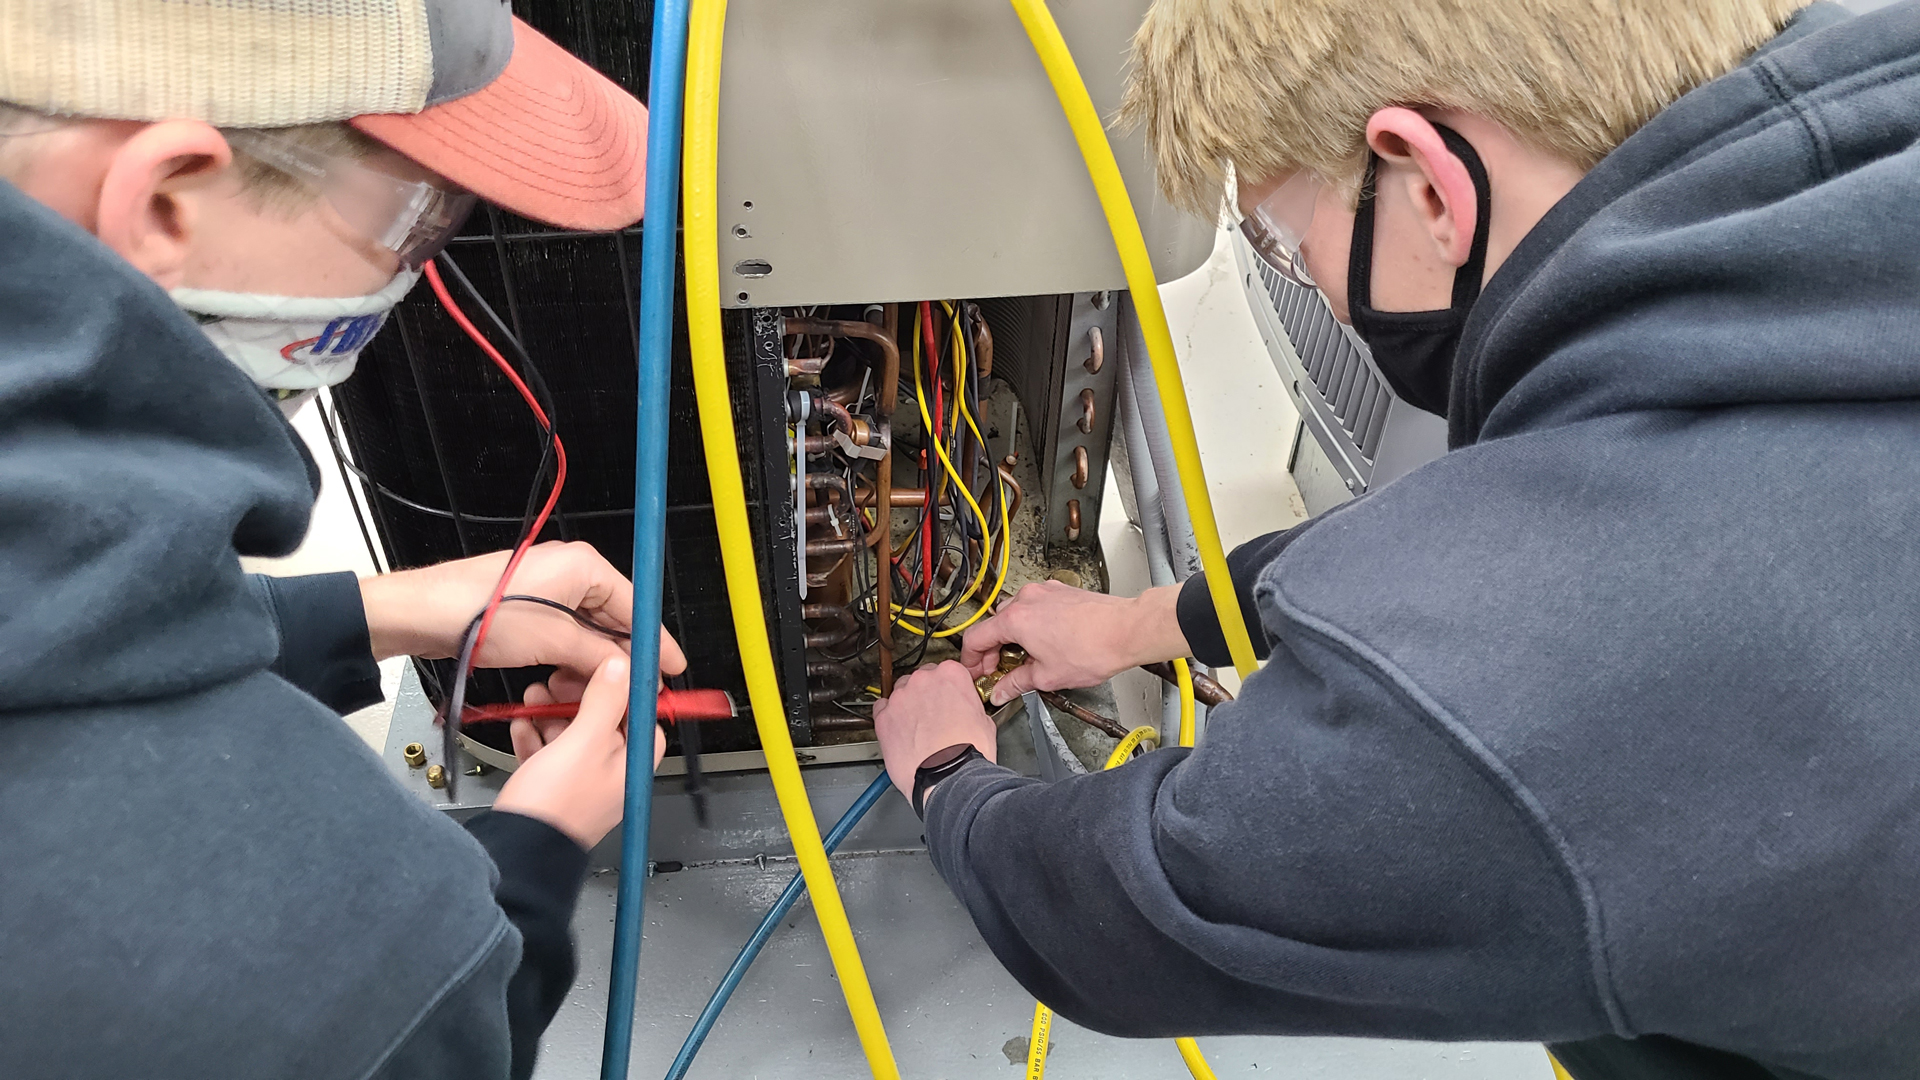 Two male HVAC Students look at wiring of HVAC unit